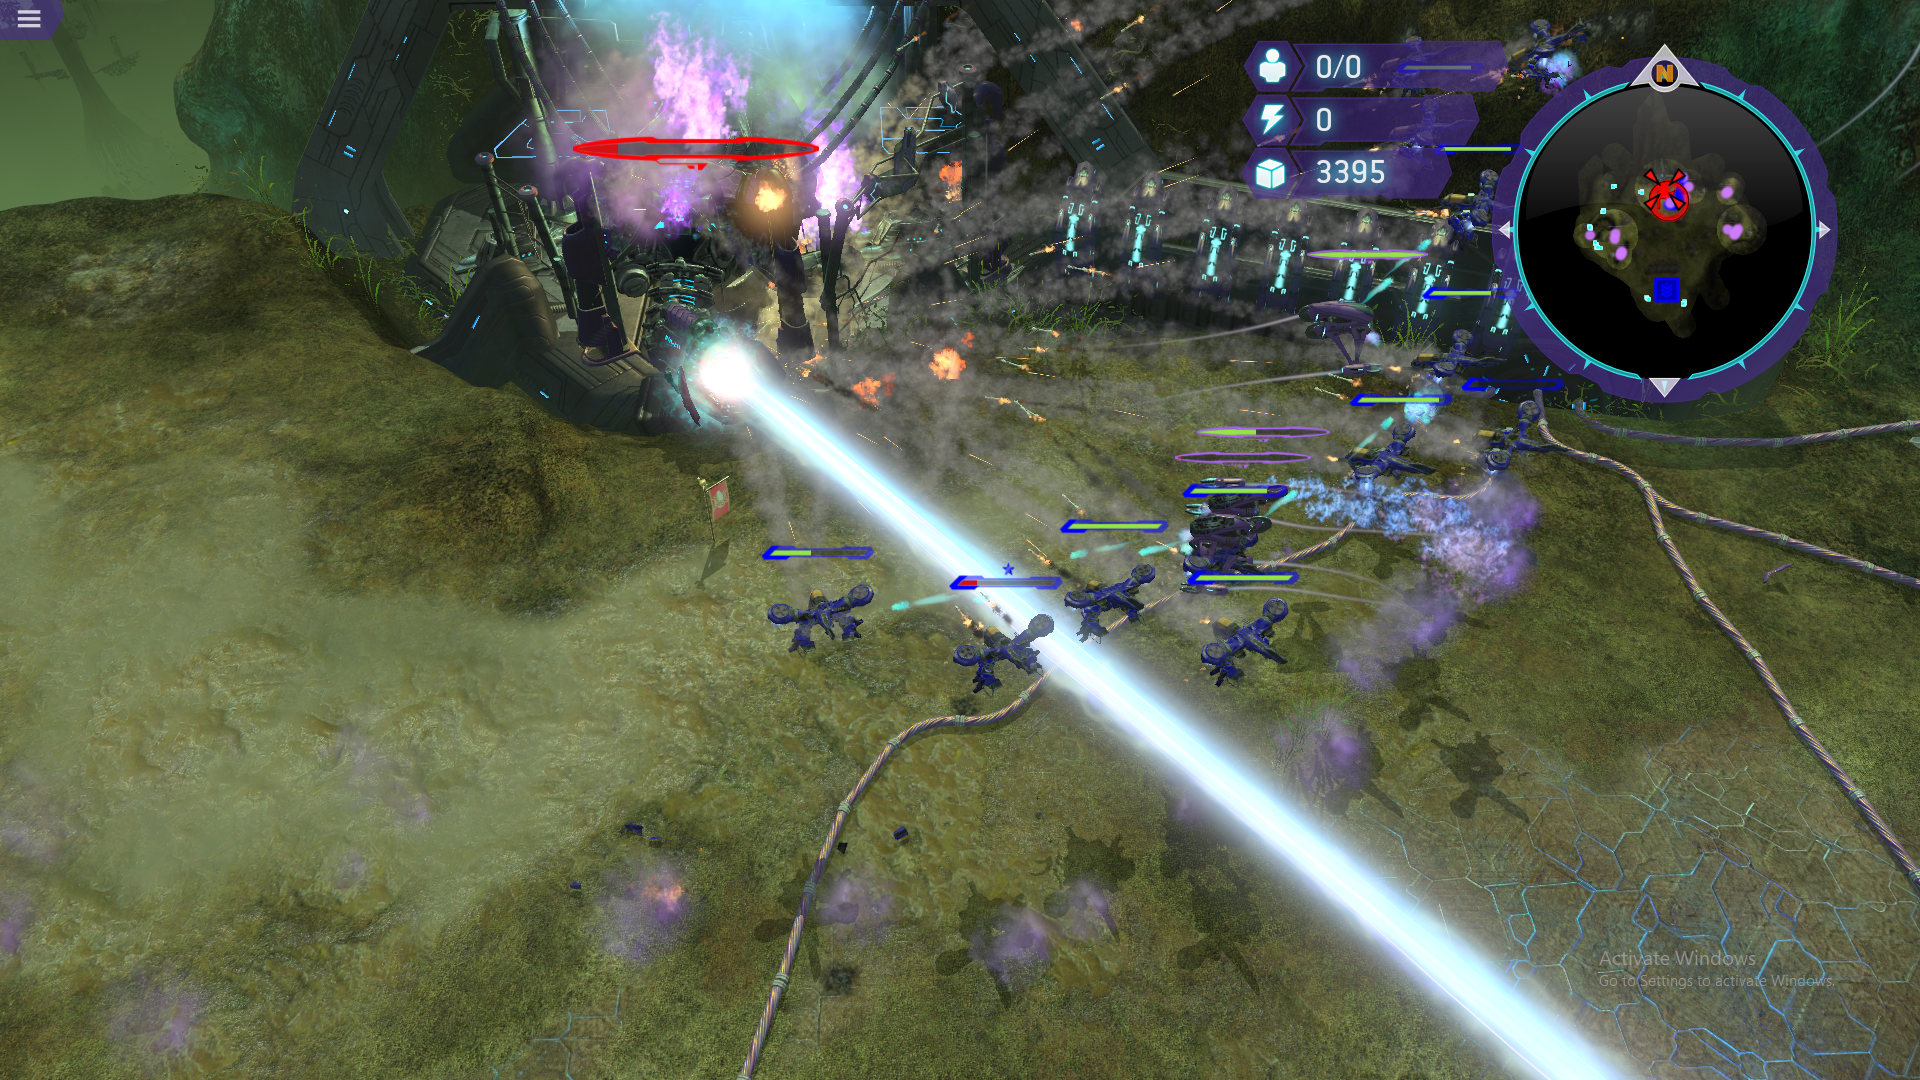 Images - Campagn PvP Mod for Halo Wars: Definitive Edition